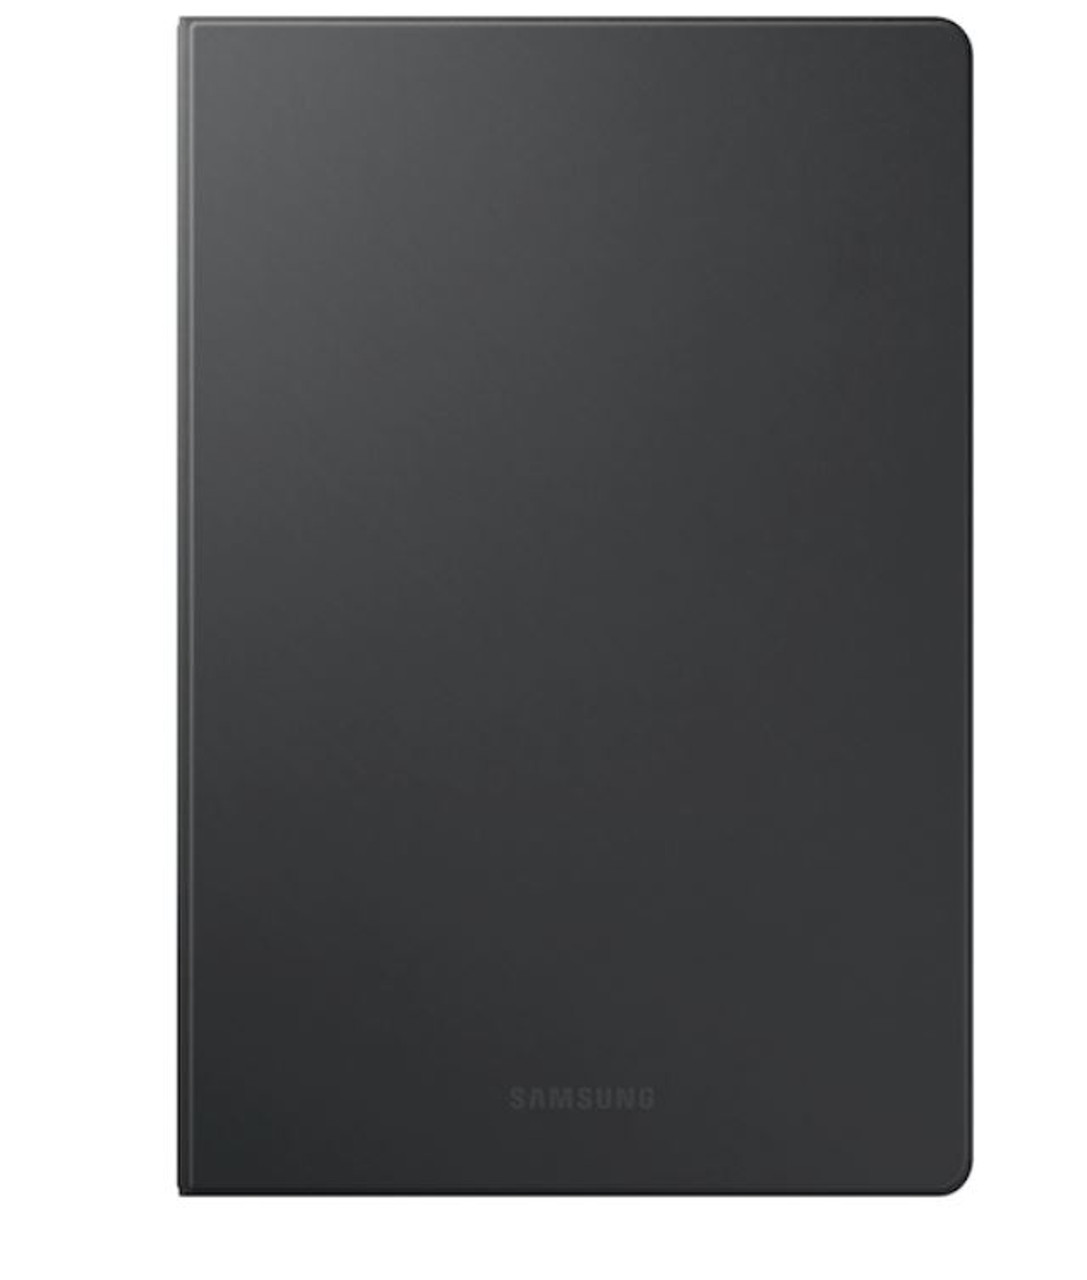 Galaxy Tab Book Cover included a $69 Value